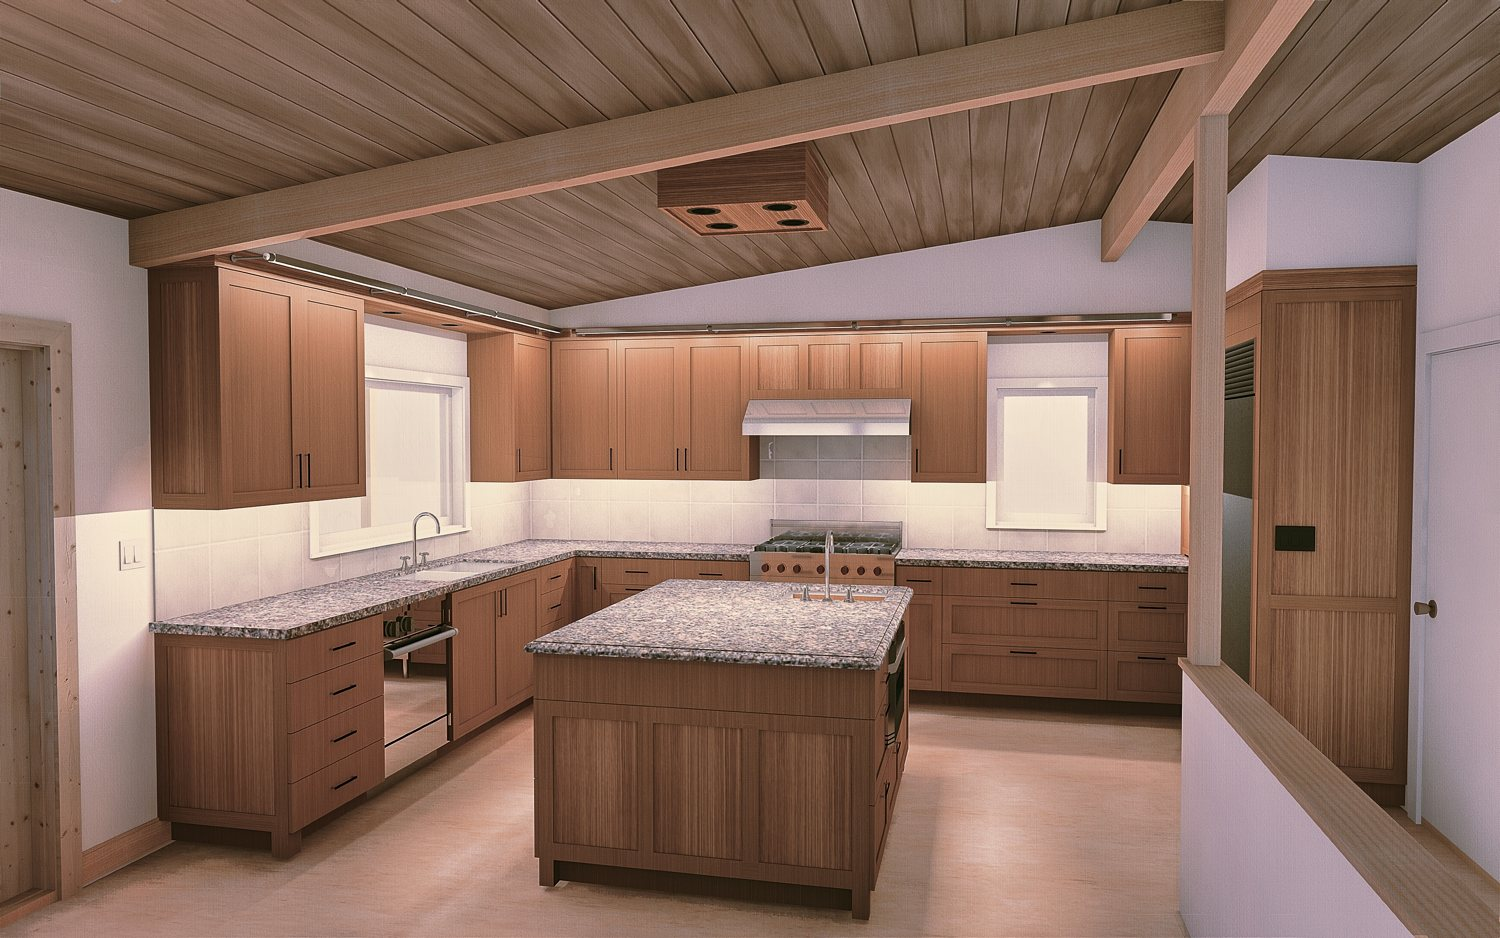 Architectural rendering for a remodeled kitchen in Multnomah Village, Portland Oregon - Cella Architecture